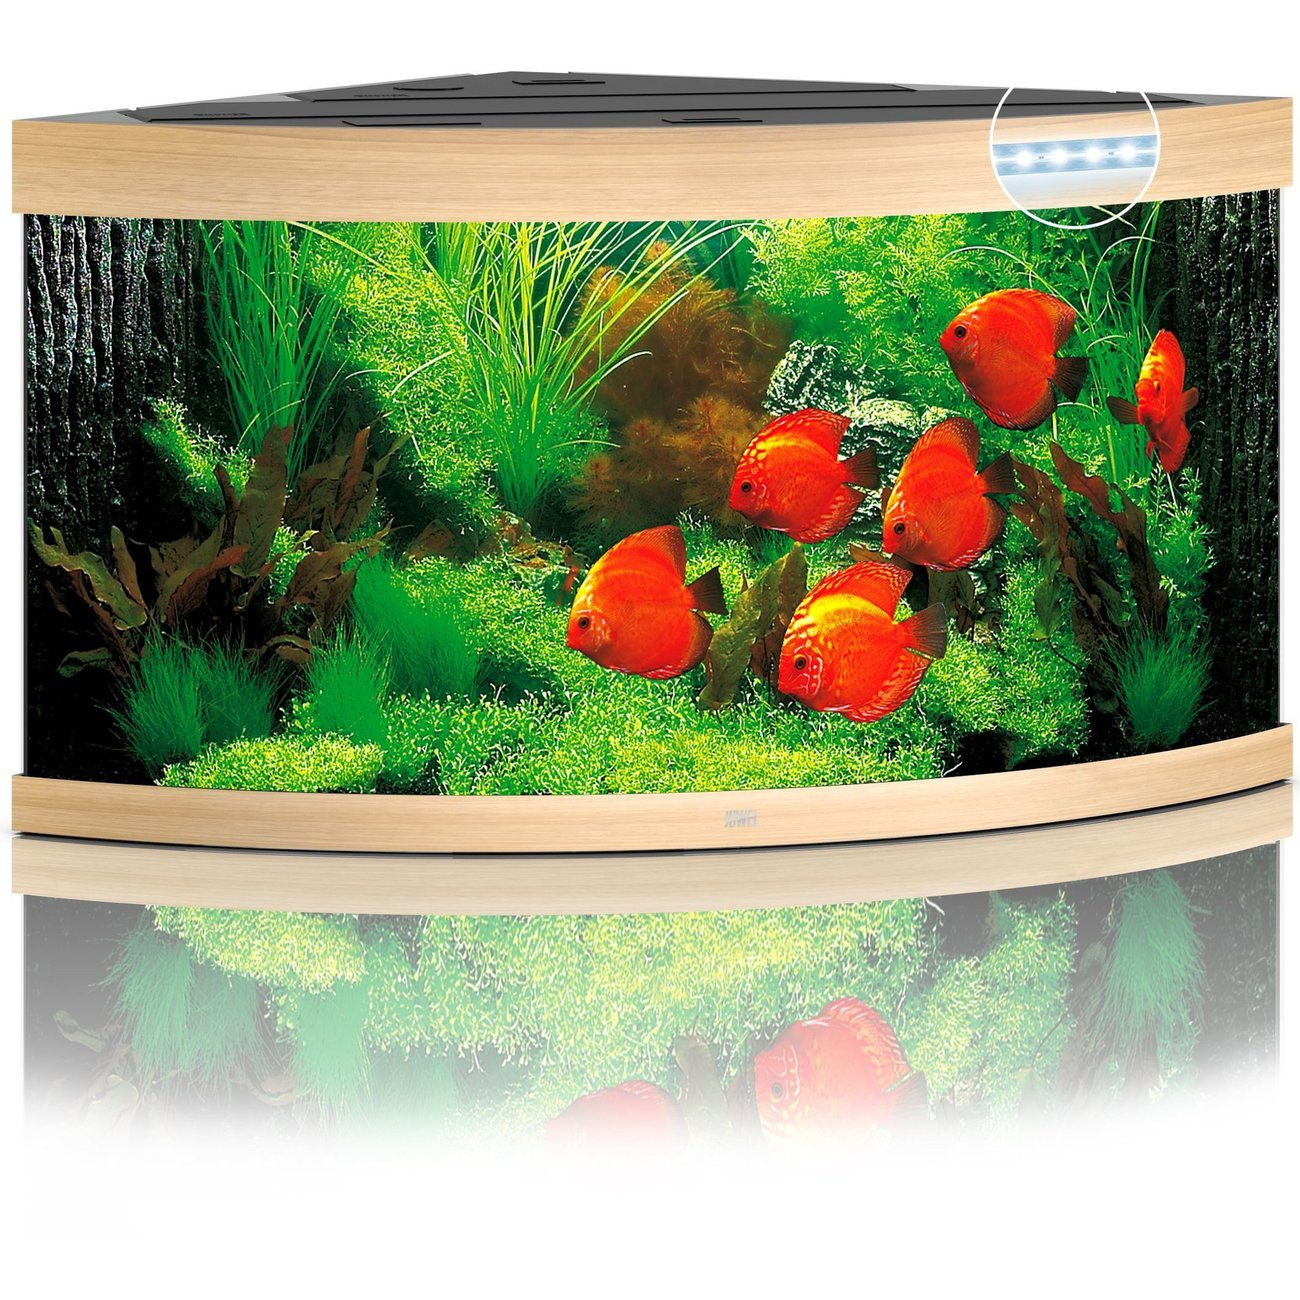 Juwel Trigon 350 LED Aquarium, Bild 3